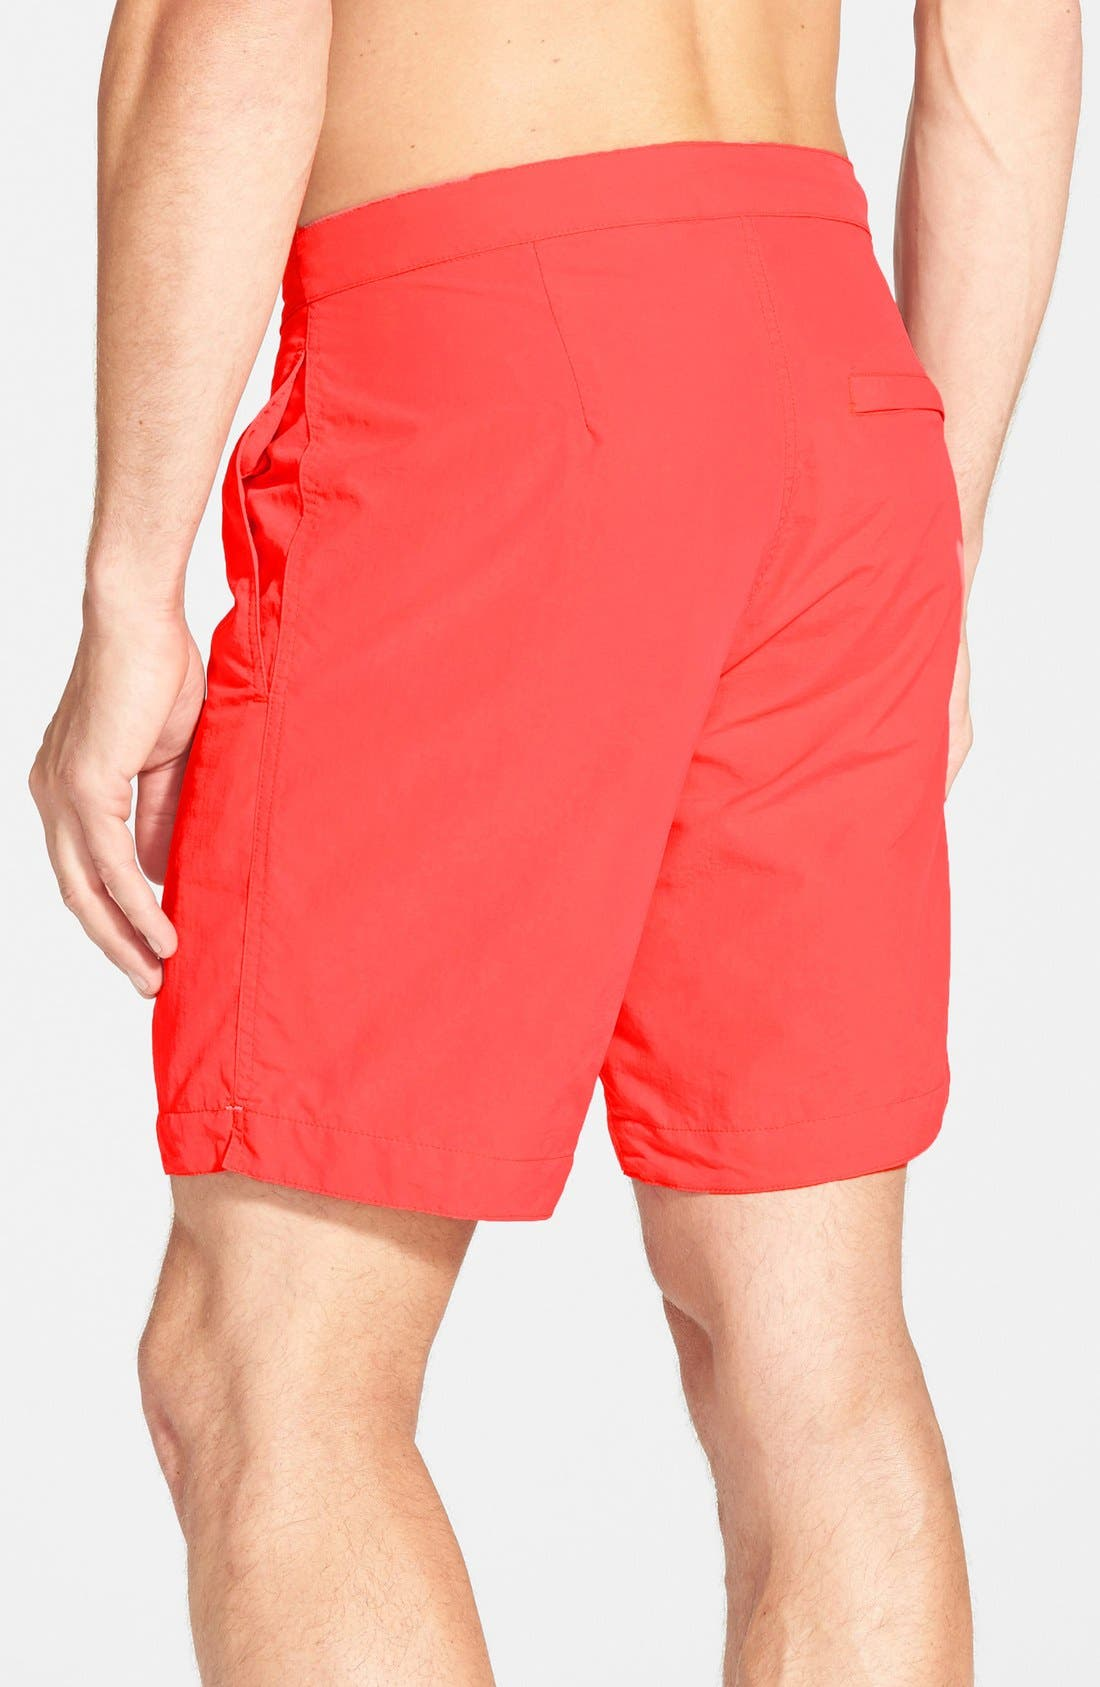 'Aruba - Island' Tailored Fit 8.5 Inch Board Shorts,                             Alternate thumbnail 2, color,                             Island Coral Red